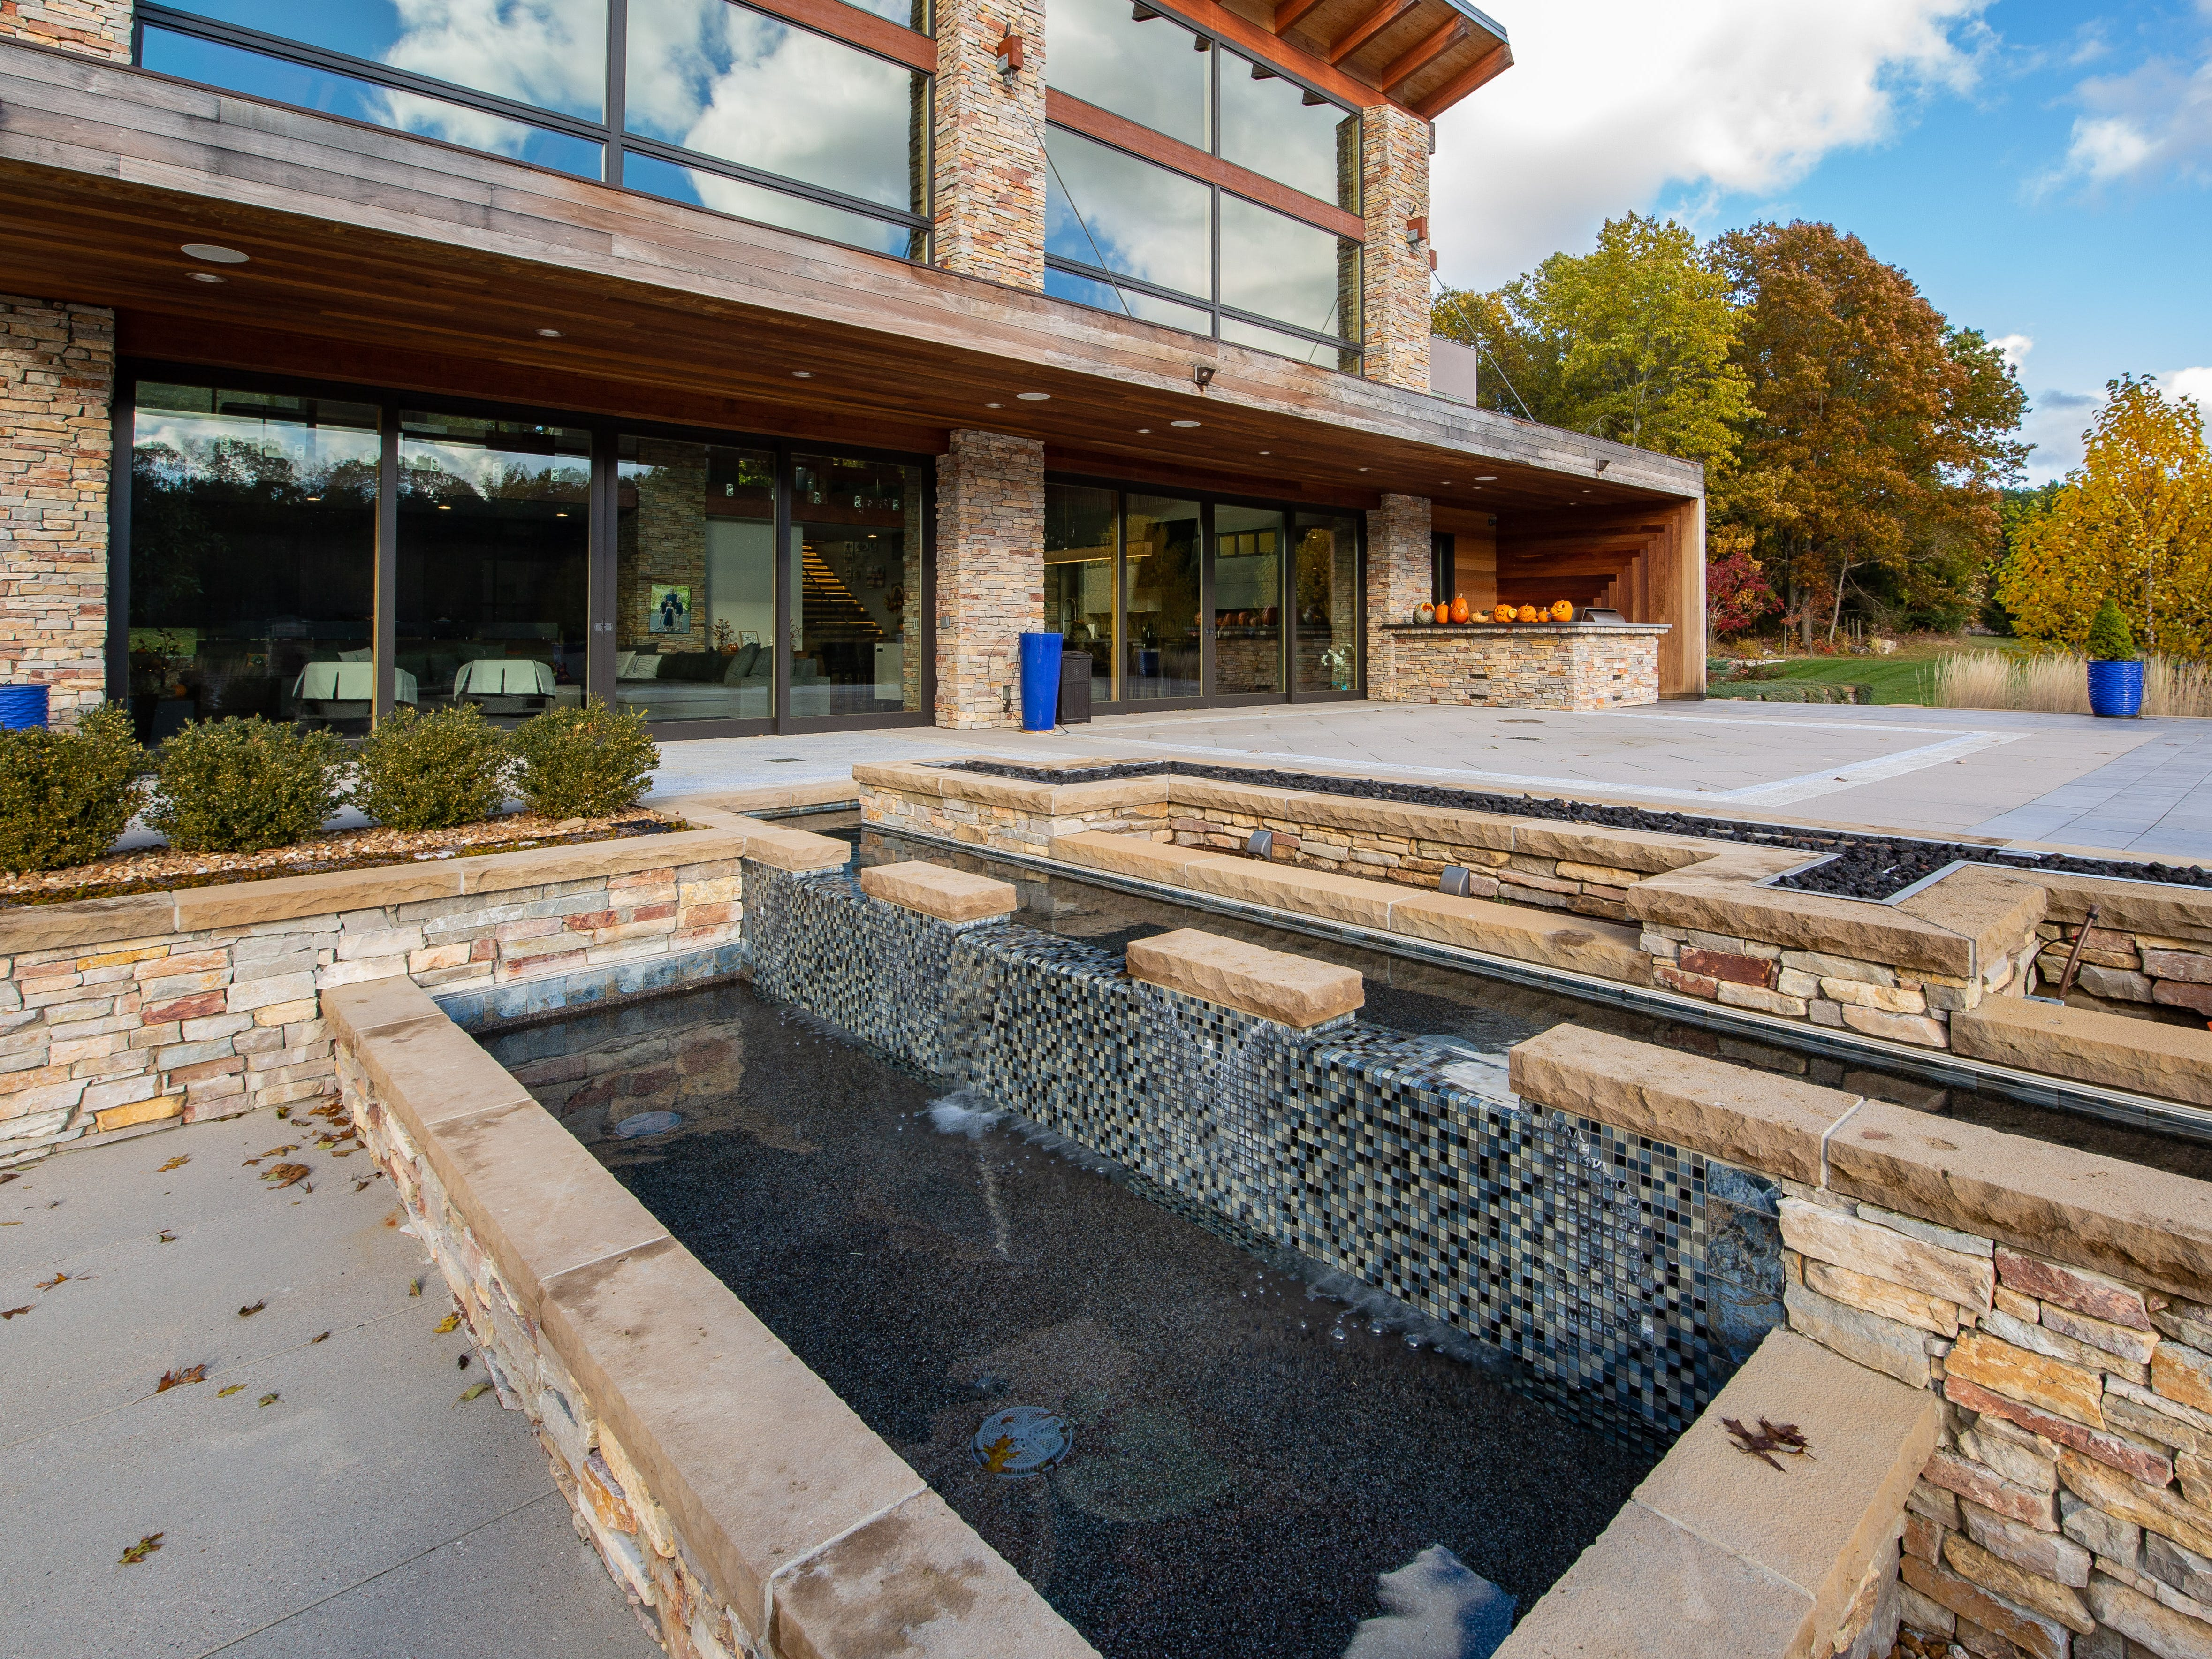 The stone, stucco and wood-sided home has two hot tubs and an in-ground swimming pool with a slide on an outdoor patio.